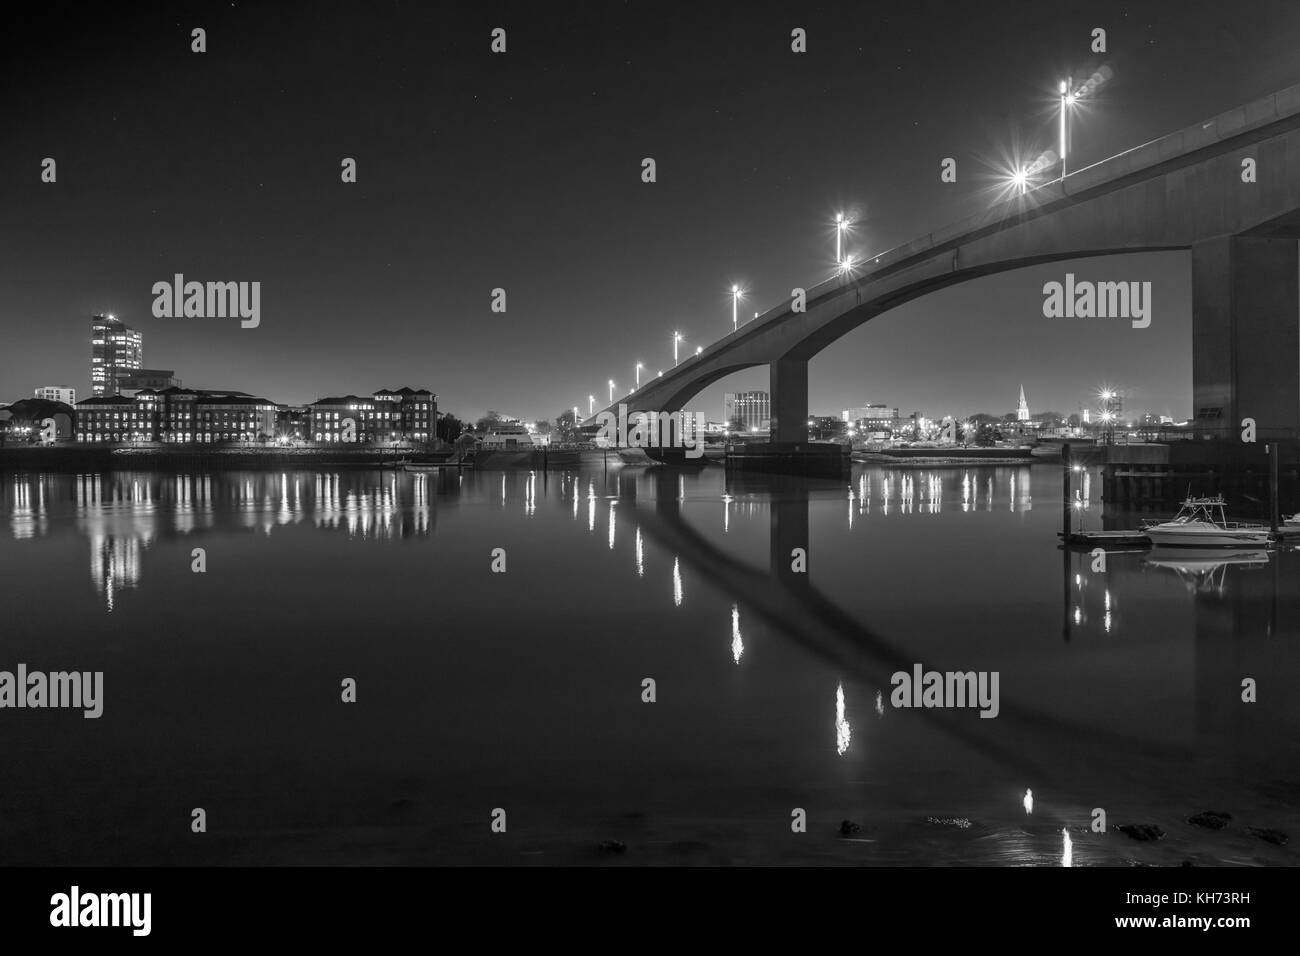 Illuminated Itchen bridge over the Itchen River at night in 2017, black and white image,Southampton, England, UK - Stock Image